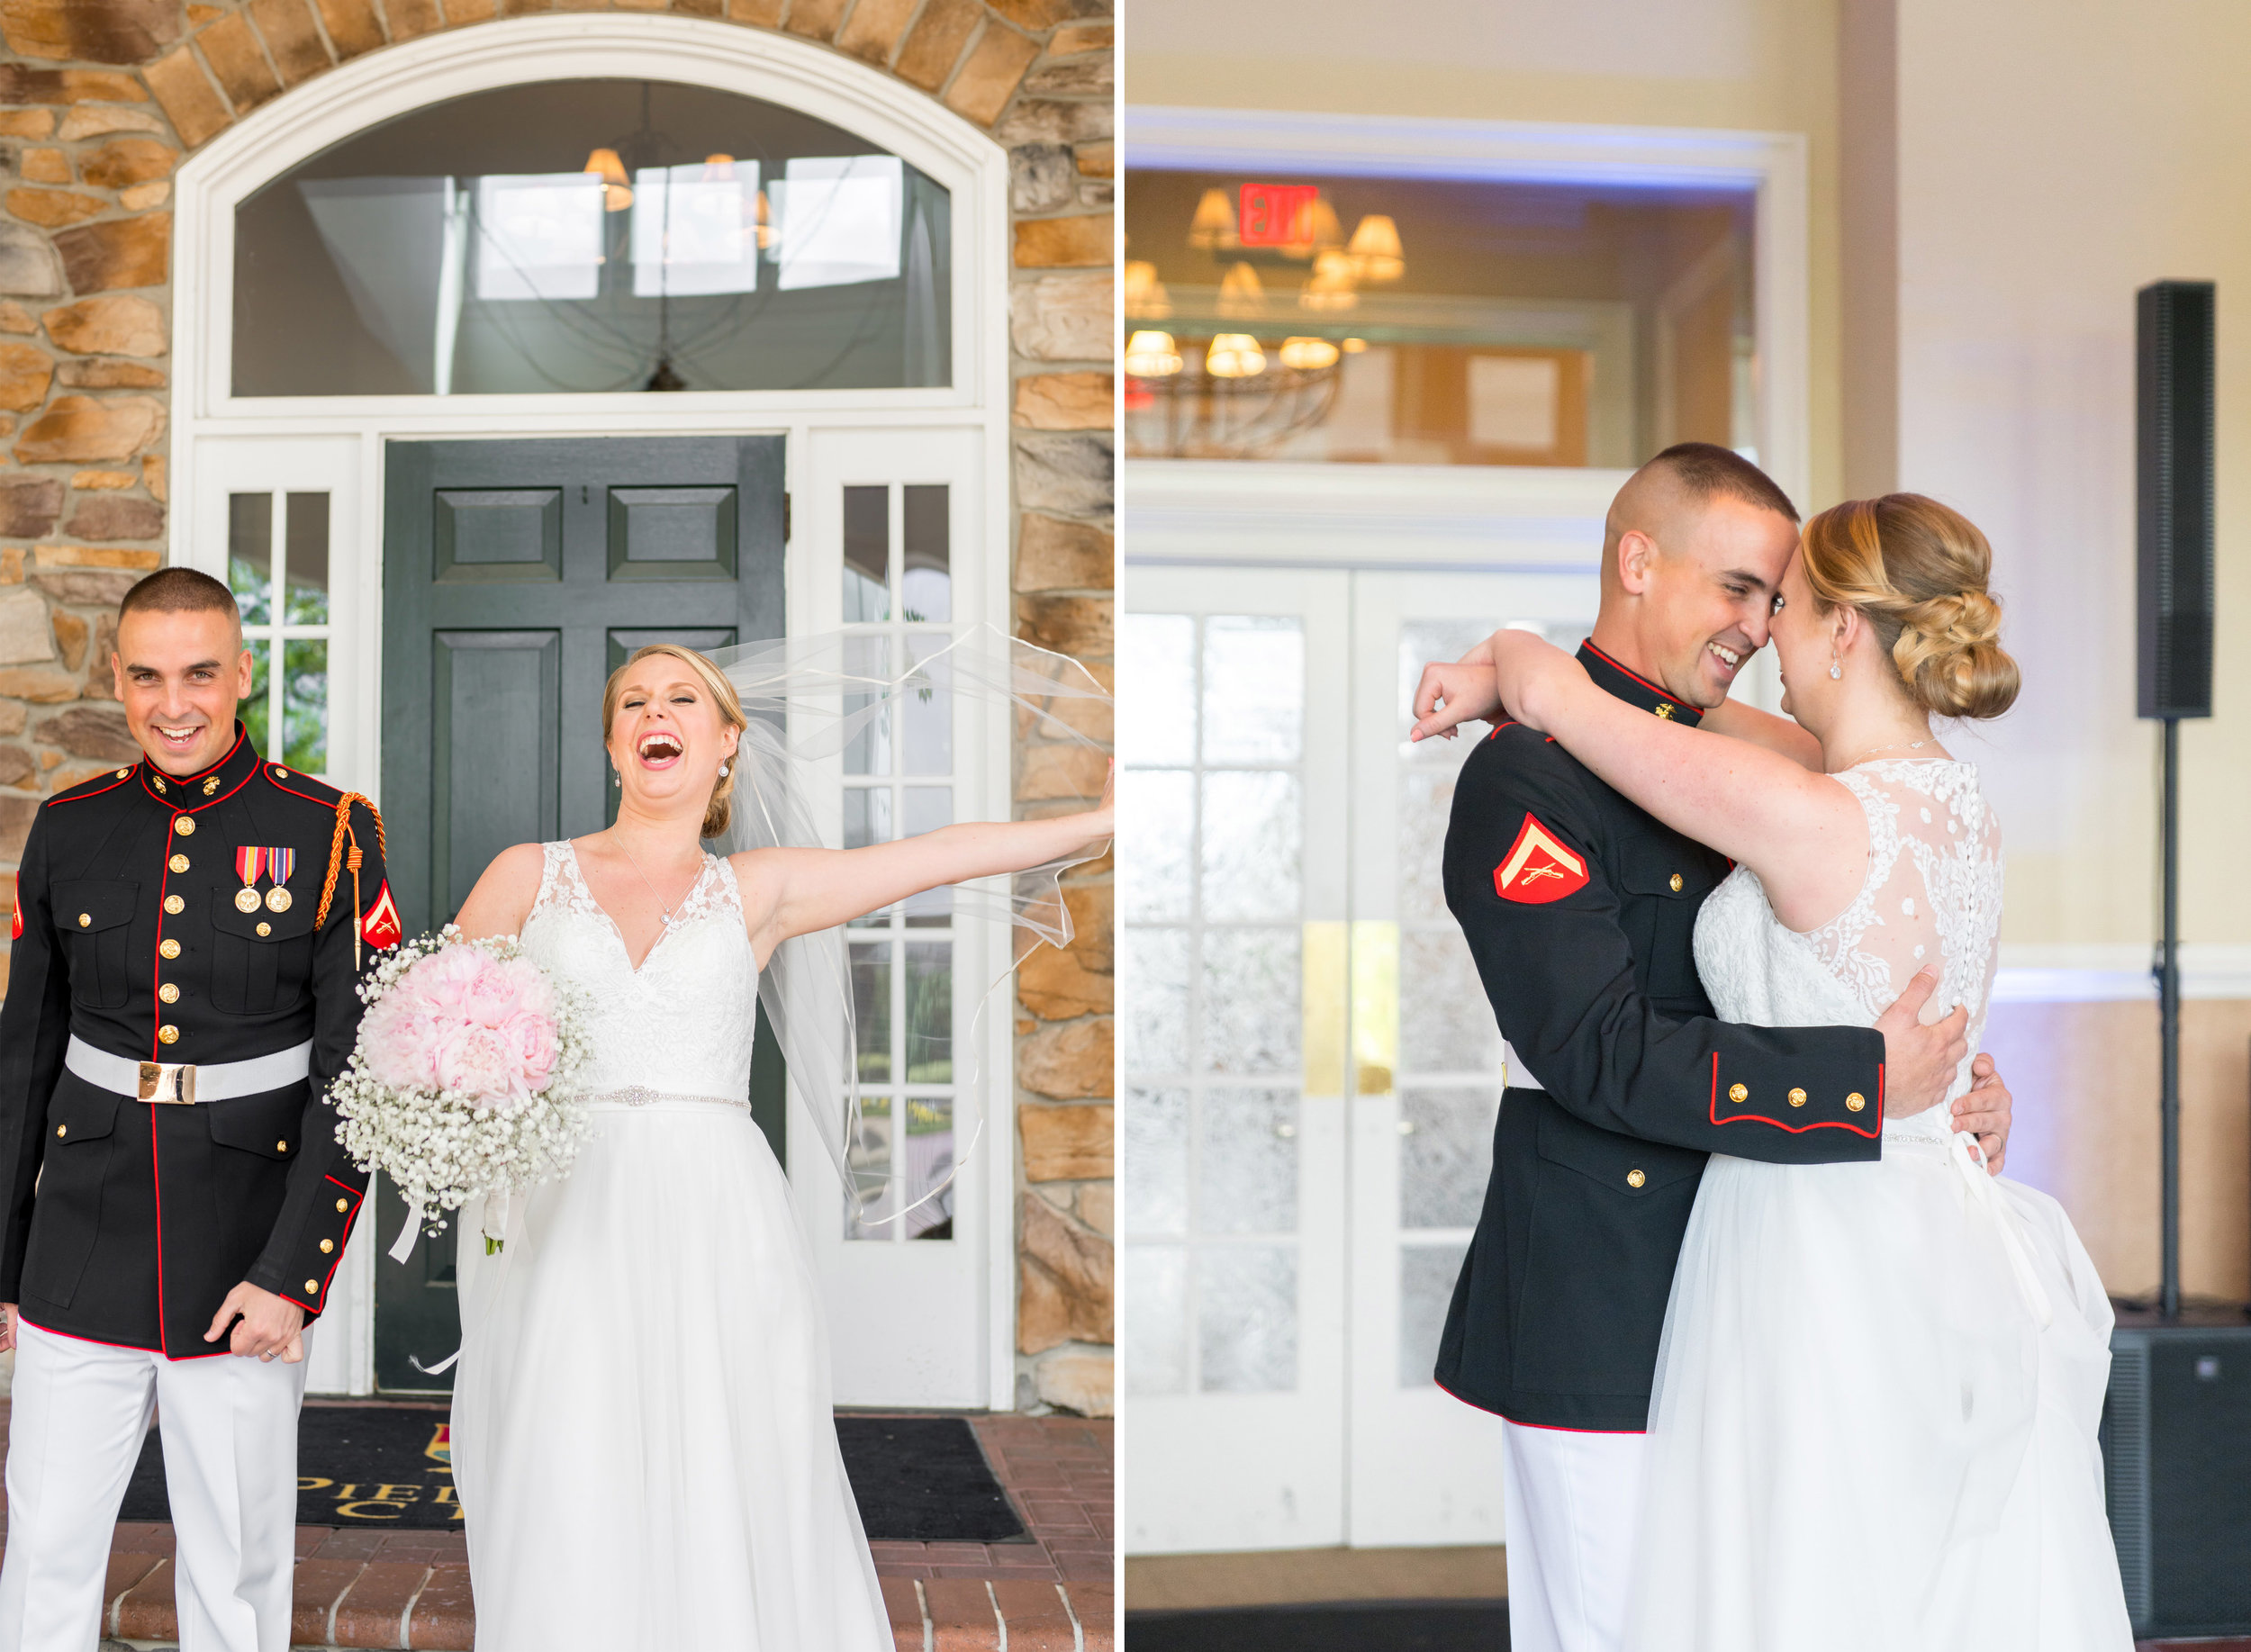 A windy day and a first dance with bride and groom at Piedmont Golf Course wedding